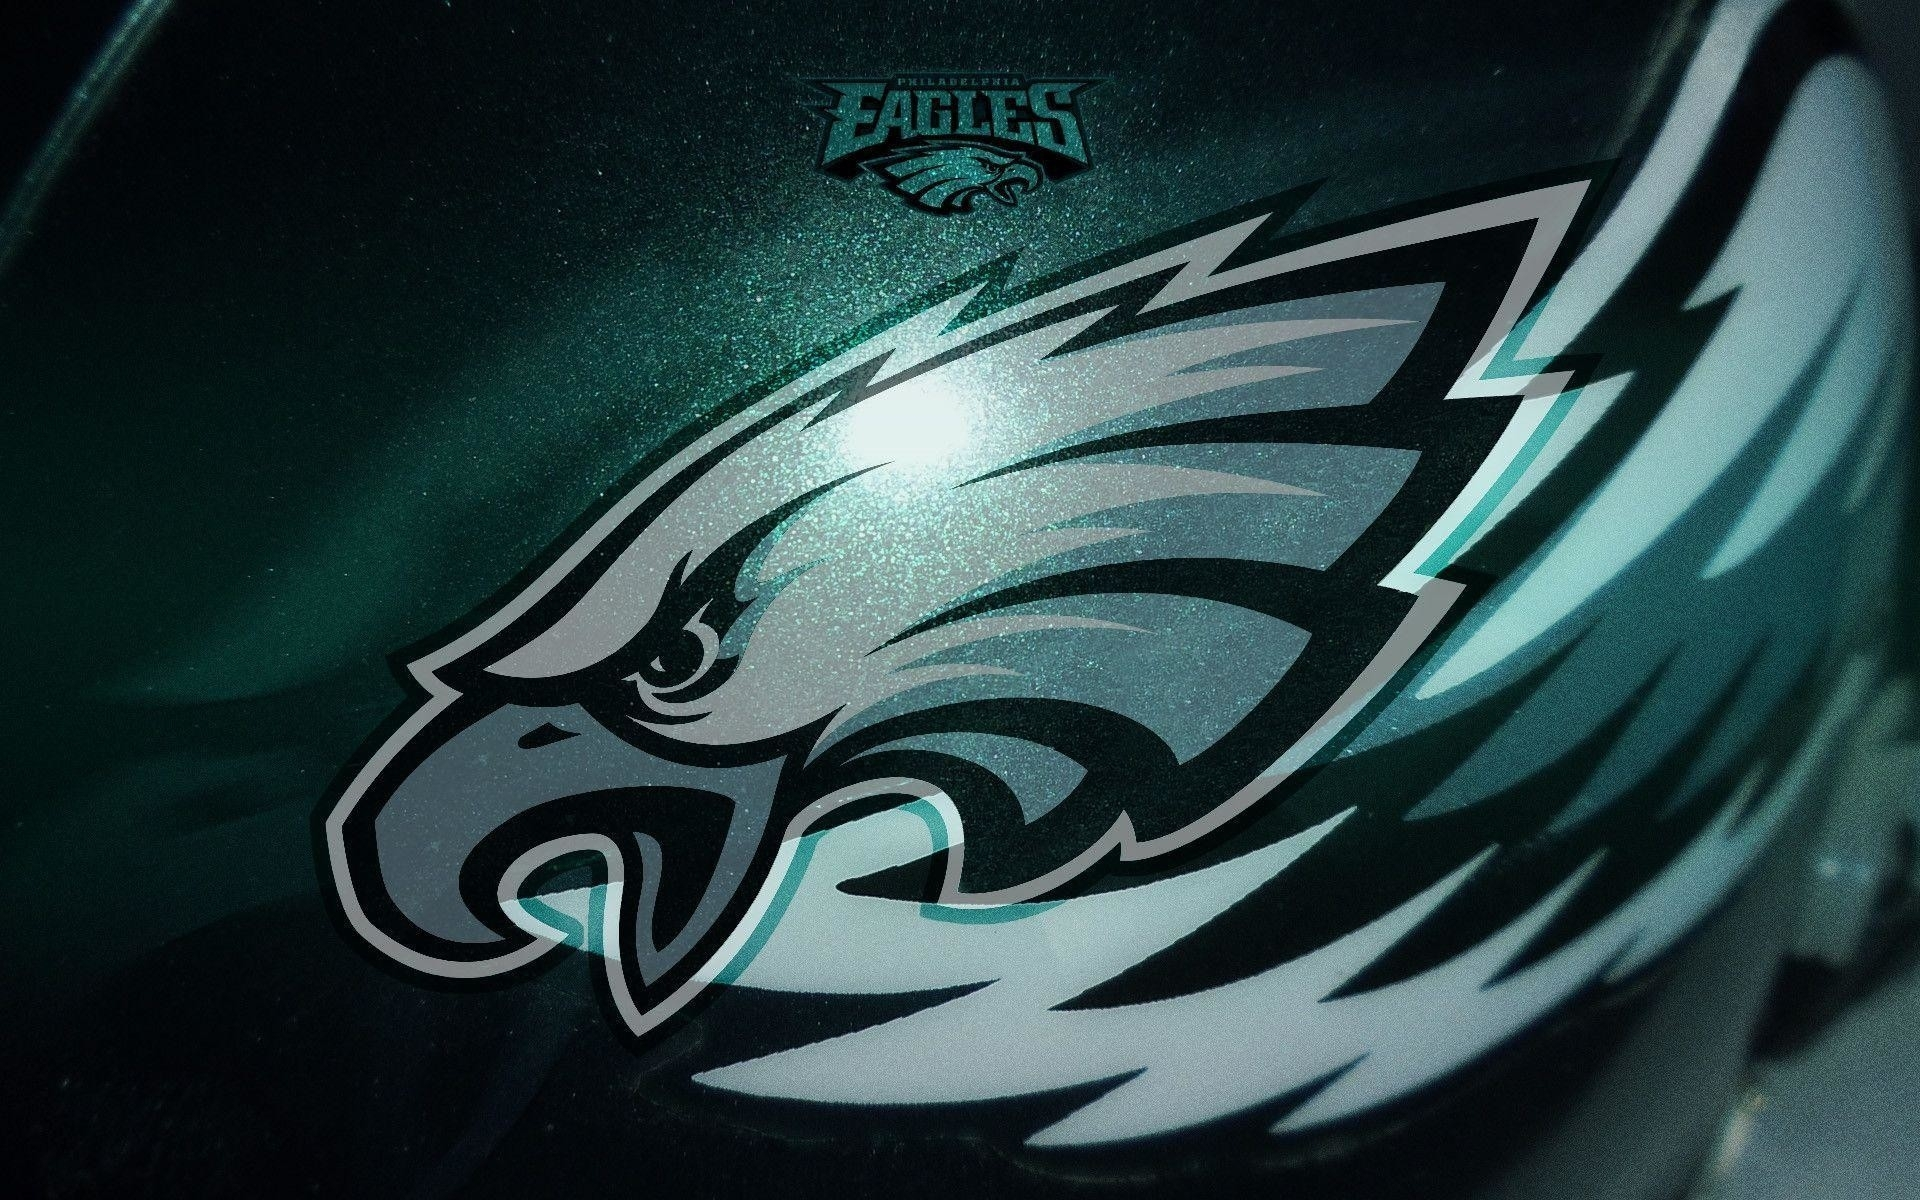 philadelphia eagles hd wallpaper (76+ images)